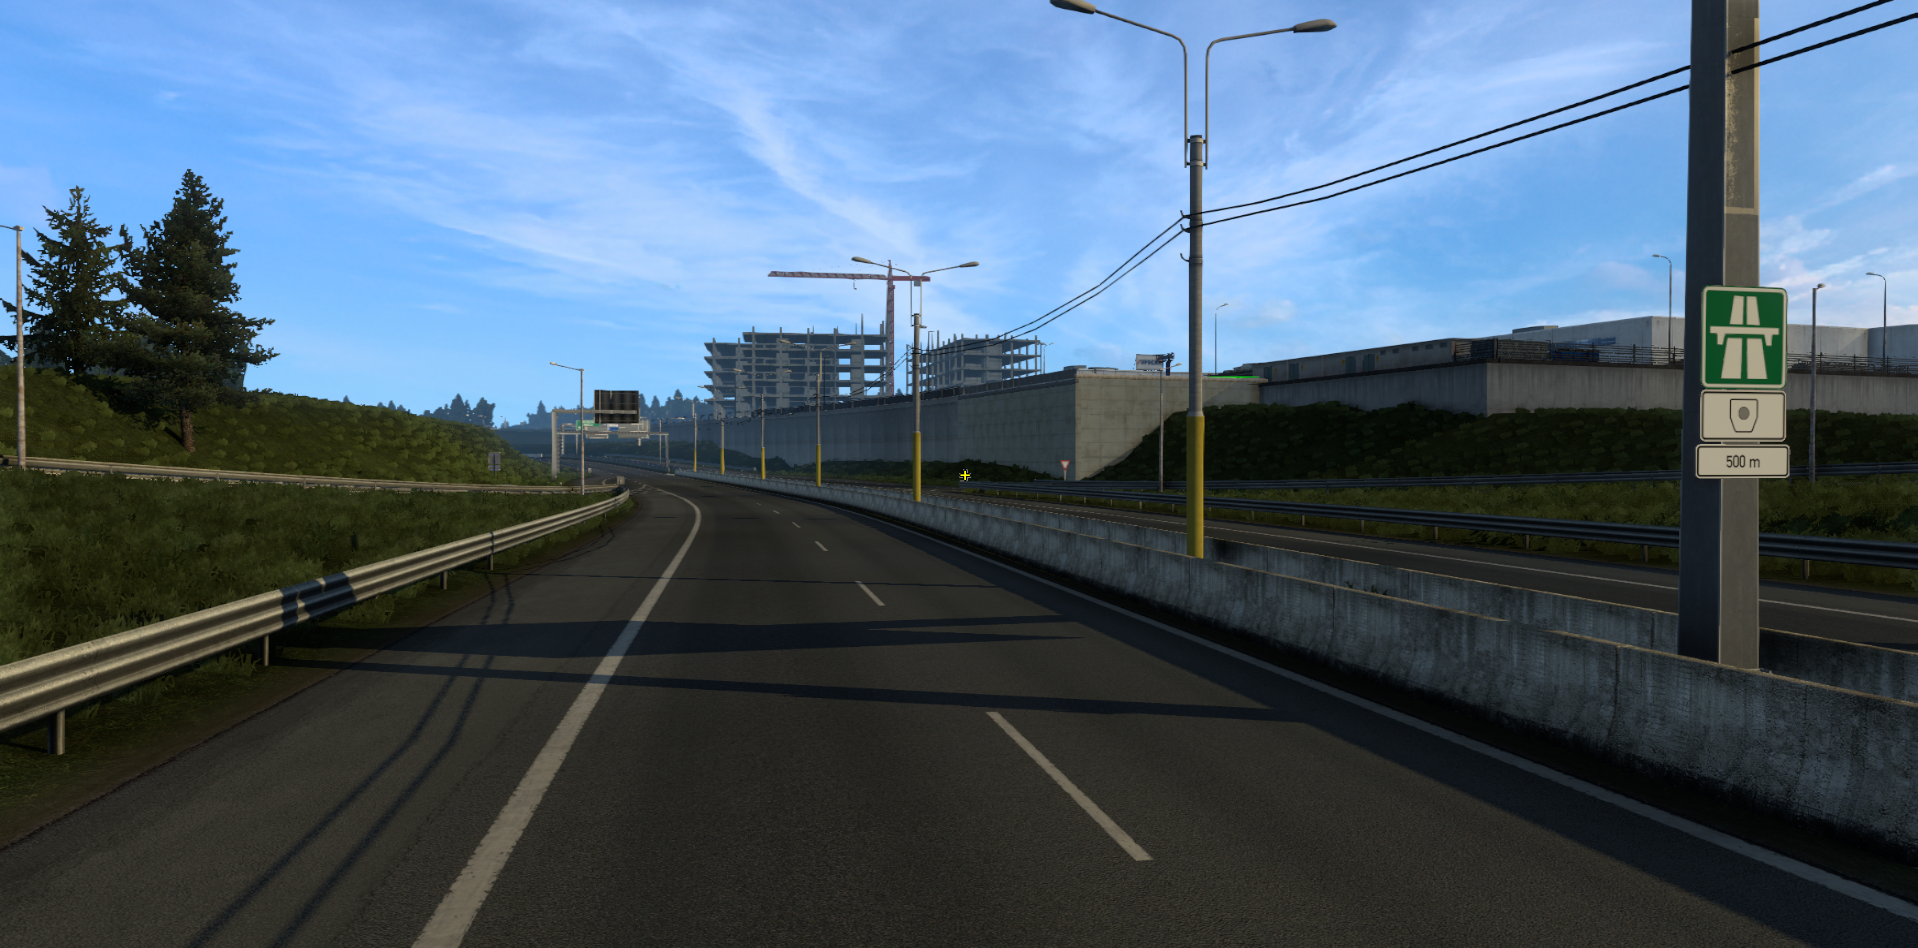 ets2_20210326_203723_00.png